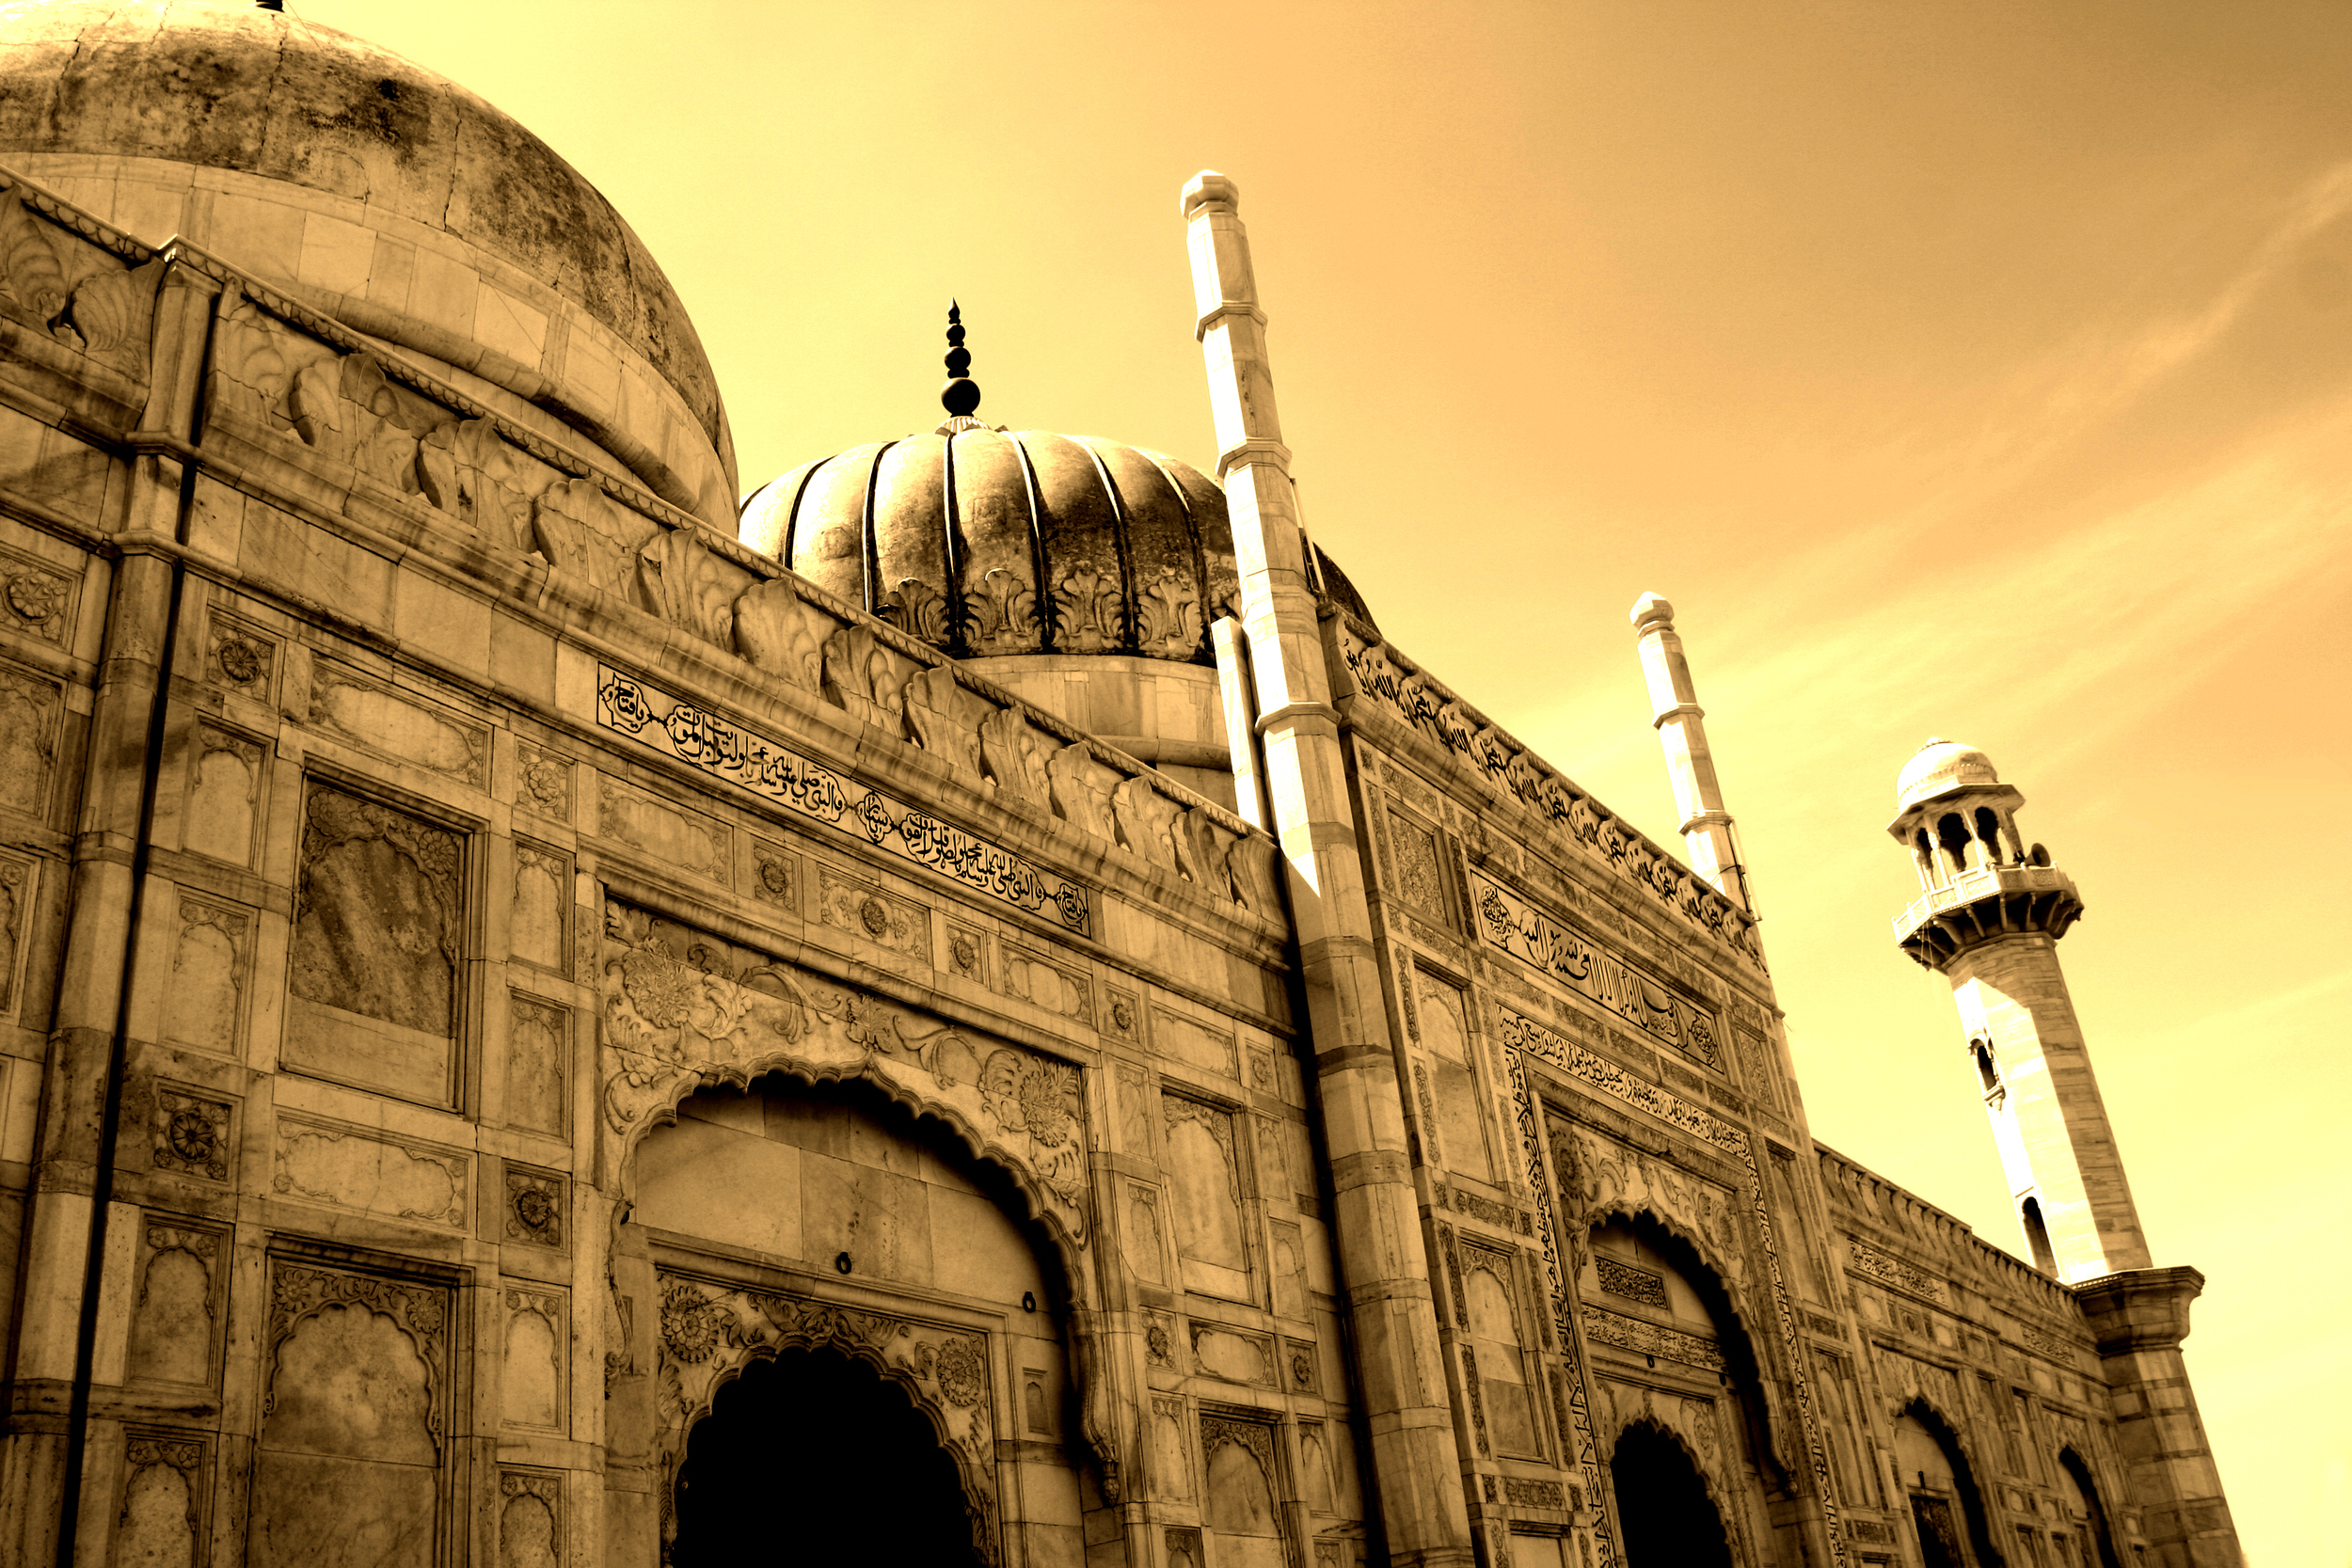 """ by Mohsinkhawar - Own work. Licensed under CC BY-SA 4.0 via Wikimedia Commons - https:::commons.wikimedia.org:wiki:File:Daravar_Fort_Mosque.jpg#:media:File:Daravar_Fort_Mosque.jpg"